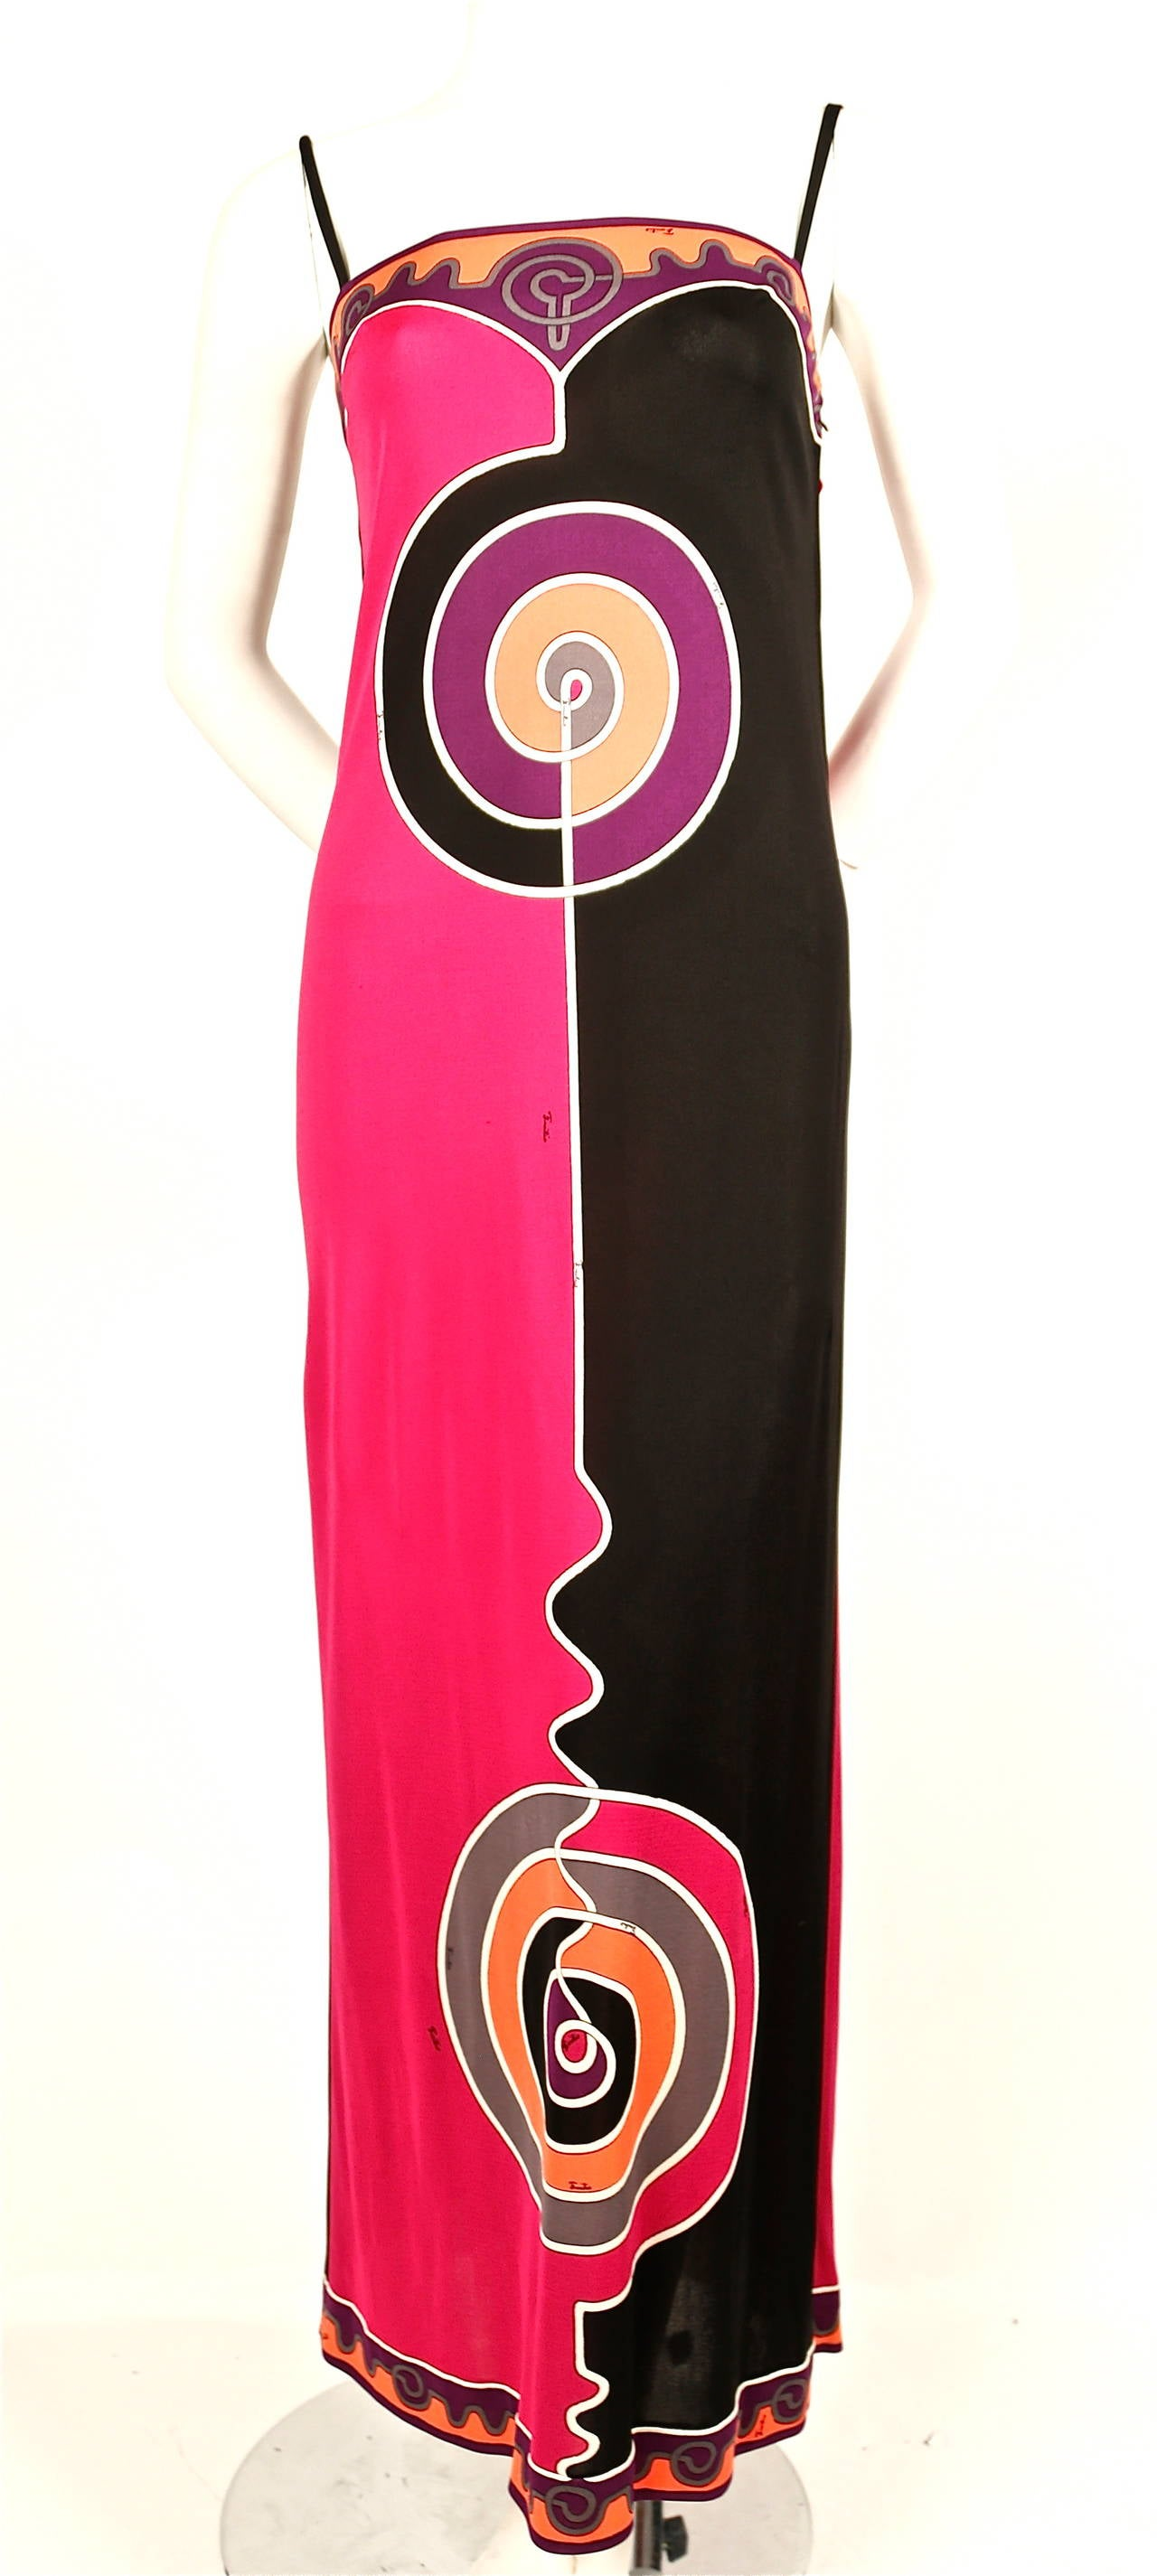 Vivid printed silk jersey spaghetti strap dress from Emilio Pucci dating to the late 1960's, early 1970's. Labeled a size 6 however this would best fit a modern size 2. Approximate measurements: bust 31.5-32